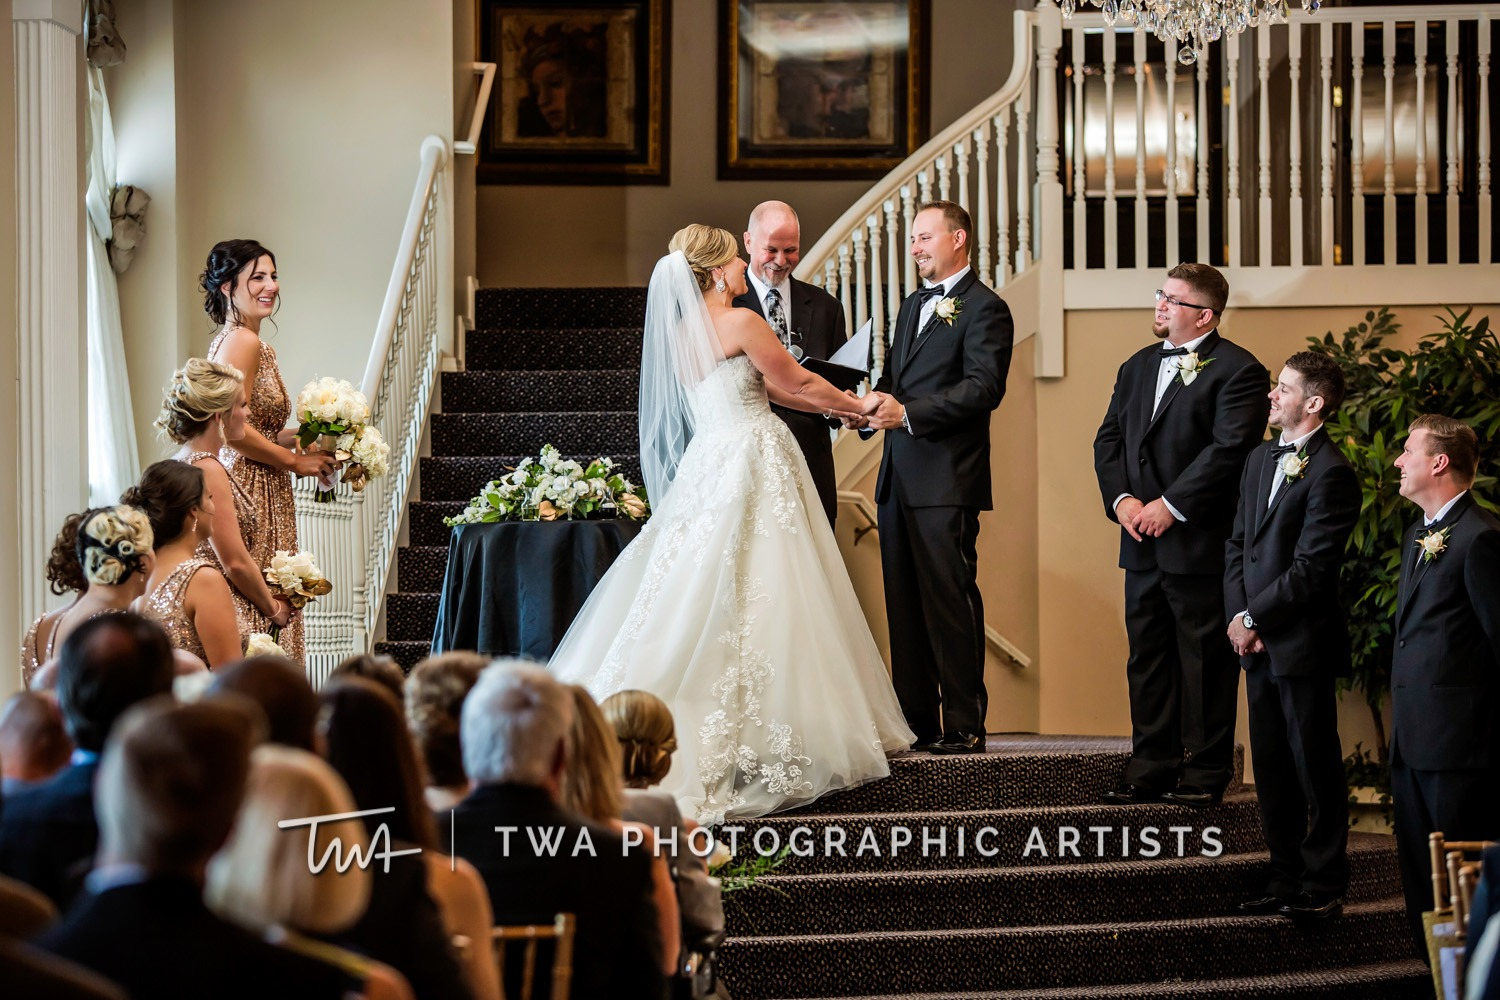 Chicago-Wedding-Photographer-TWA-Photographic-Artists-Abbington-Banquets_Slattery_Swanberg_MiC_NS-0400_dw